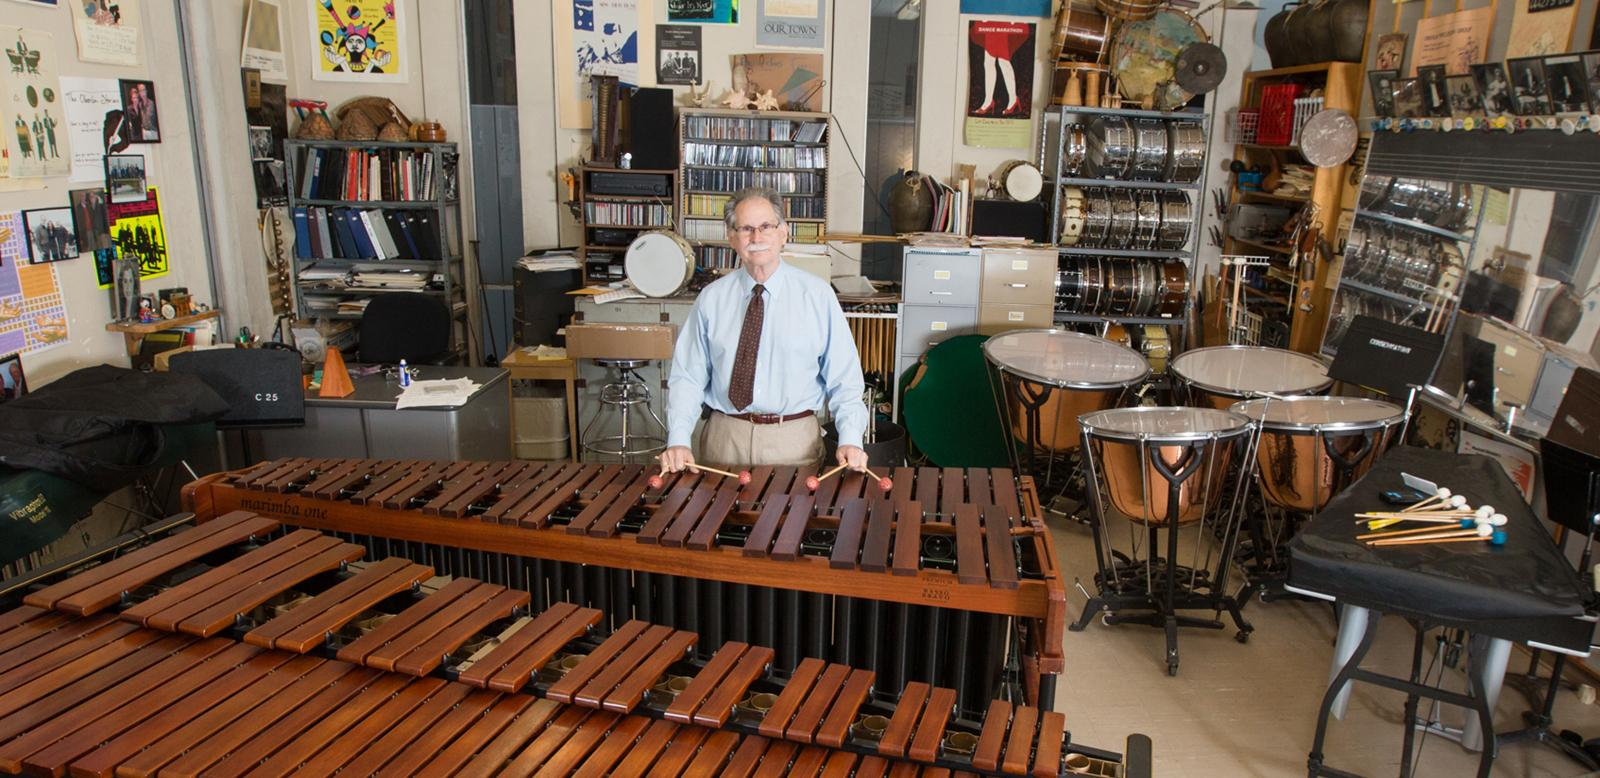 Professor in studio surrounded by percussion instruments